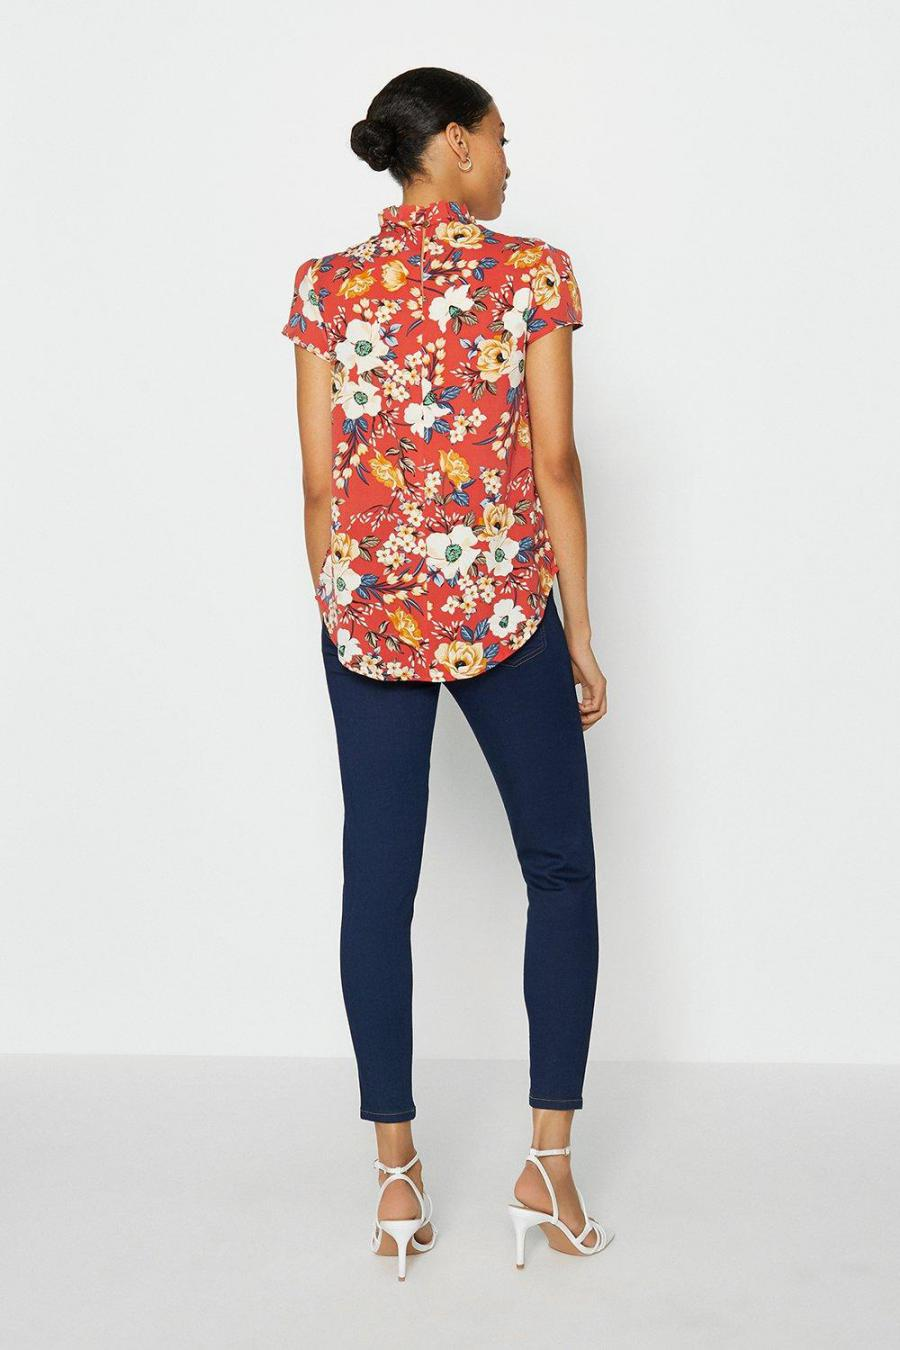 Coast Shell Tops   Womens Short Sleeve Frill Neck Top Floral